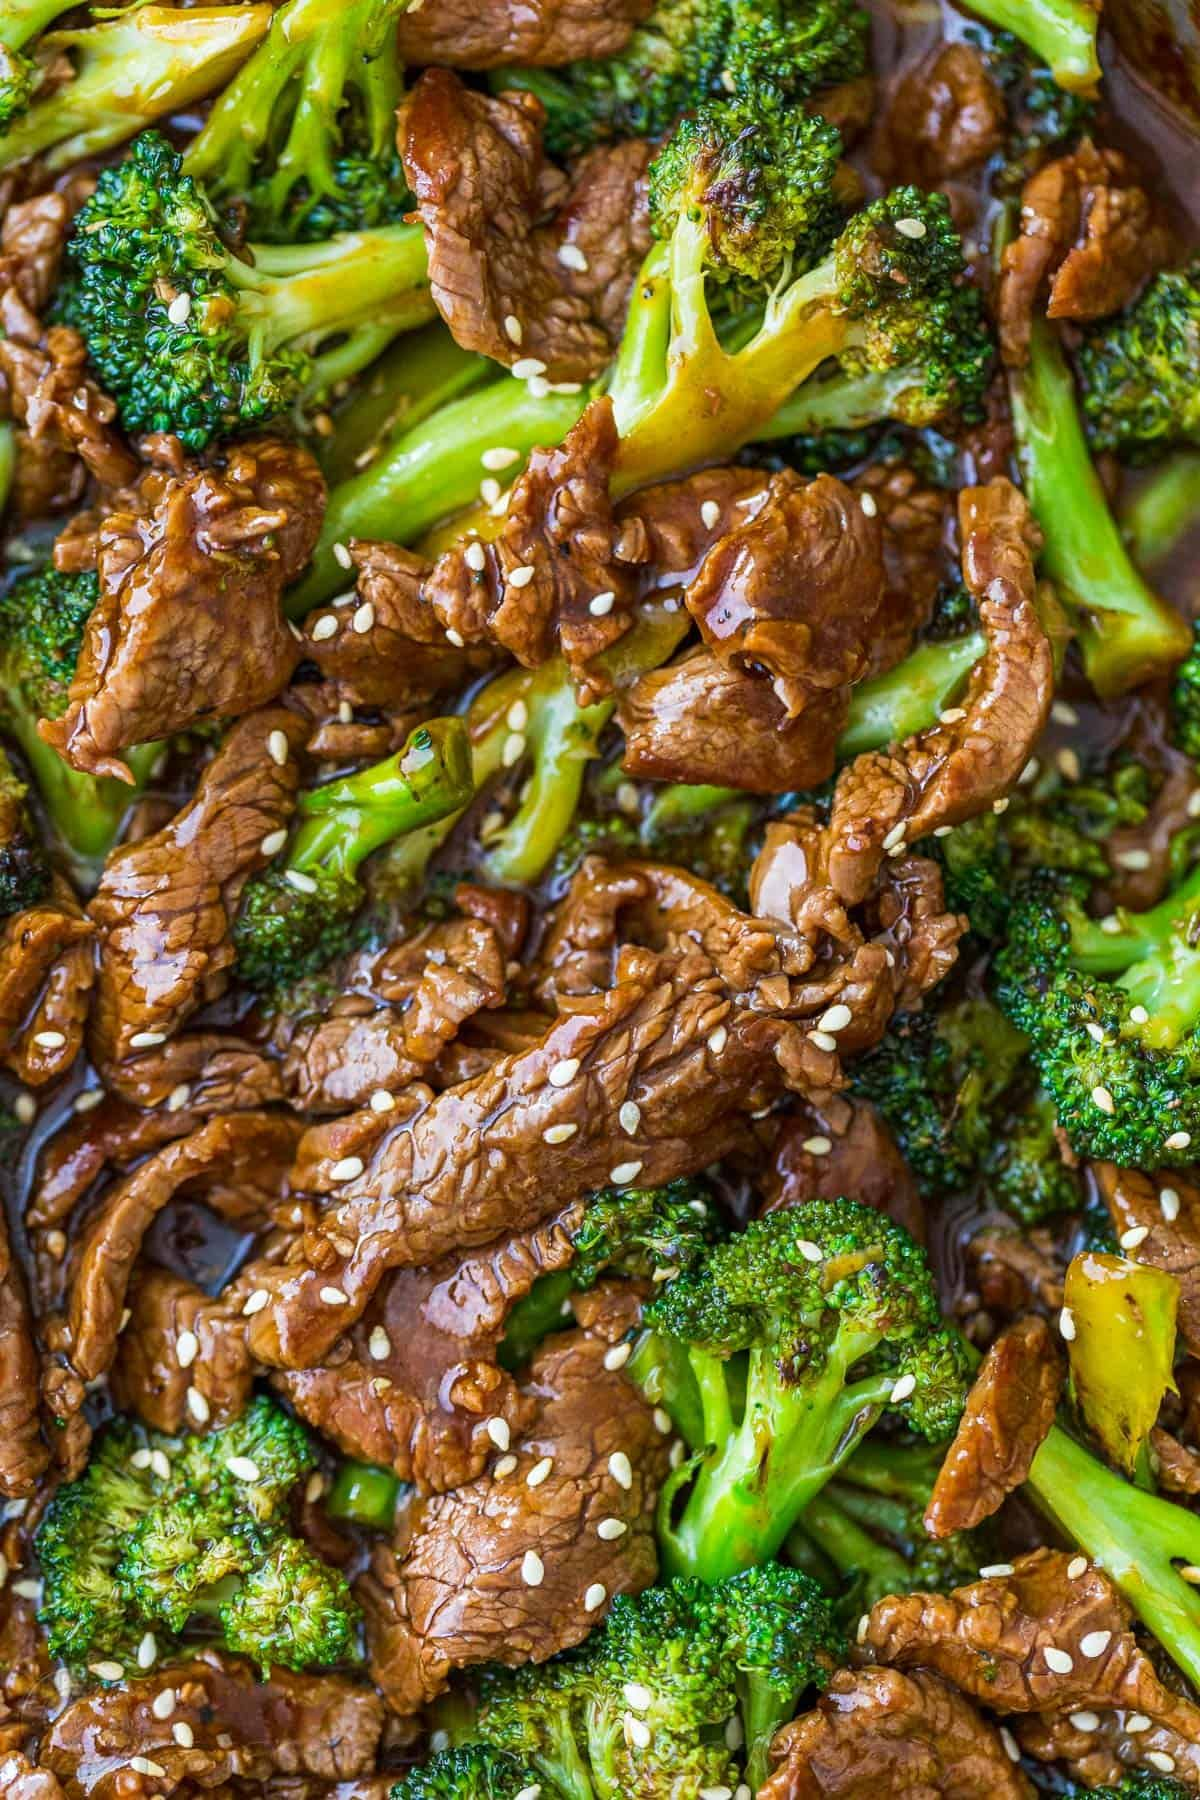 Photo of Beef and Broccoli is an easy, 1-pan, 30-minute meal loaded with broccoli, tender…